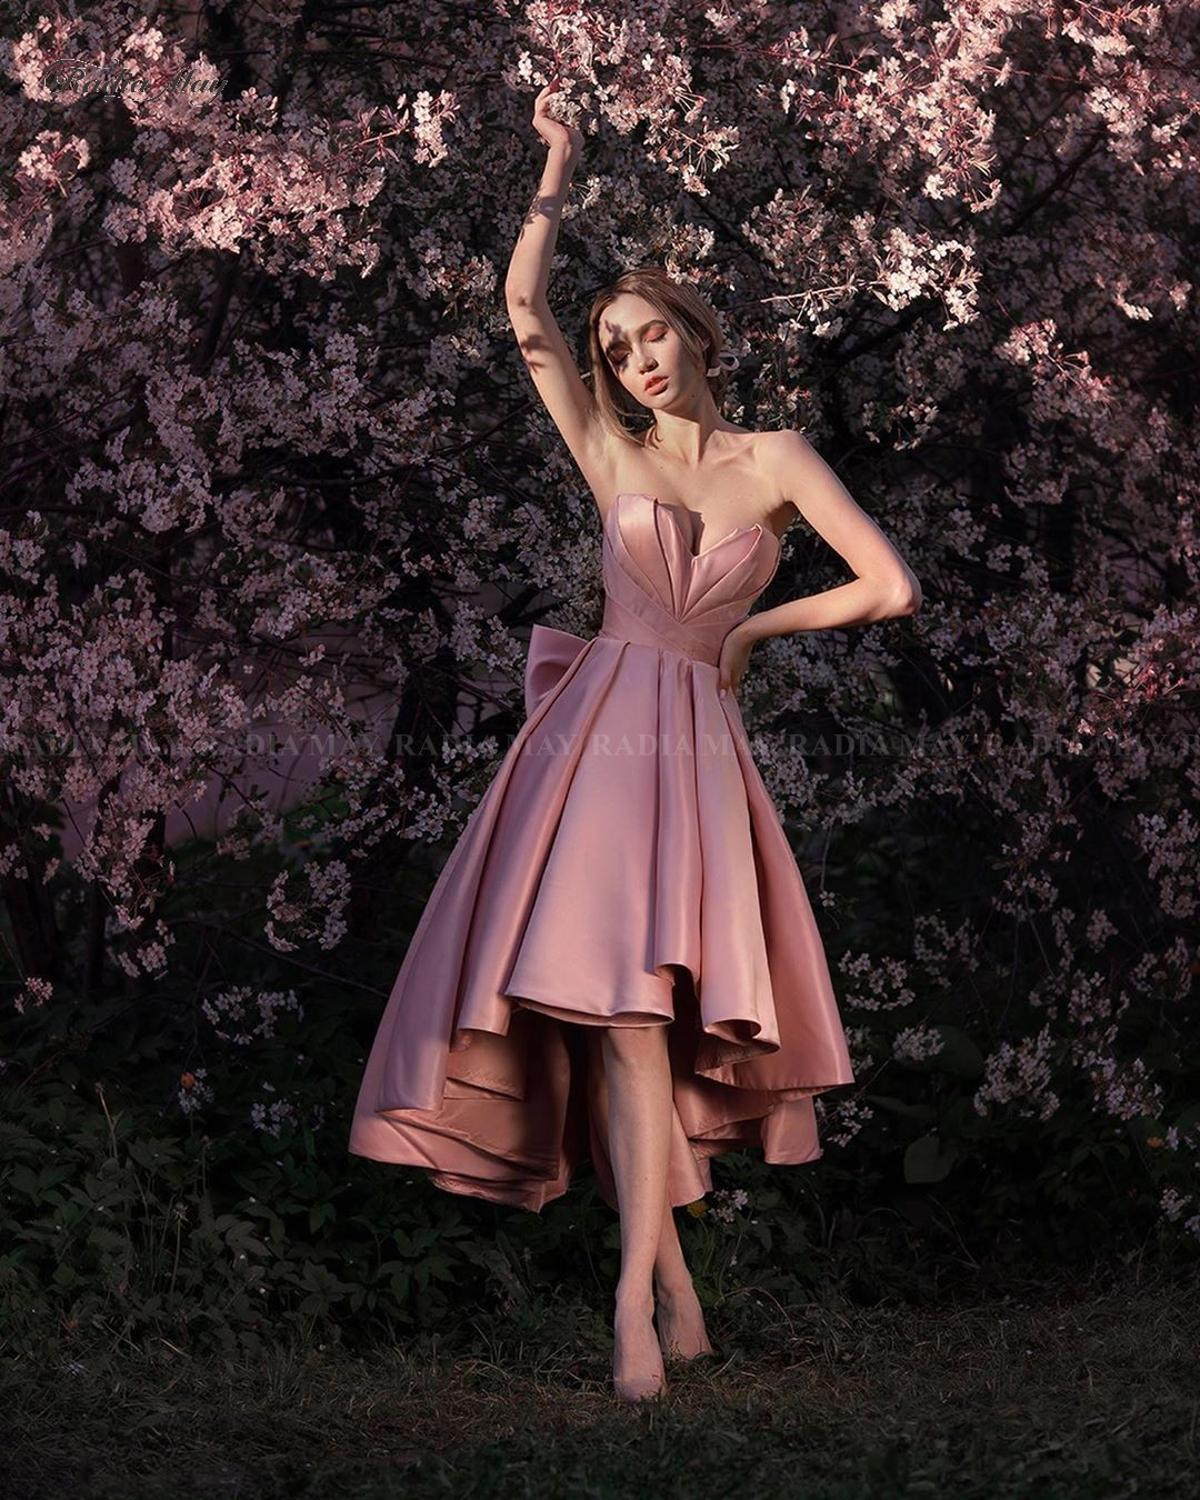 Pink Satin High Low Cocktail Dresses 2020 Sweetheart Short Front Long Back Homecoming Dress Knee Length Graduation Party Gowns